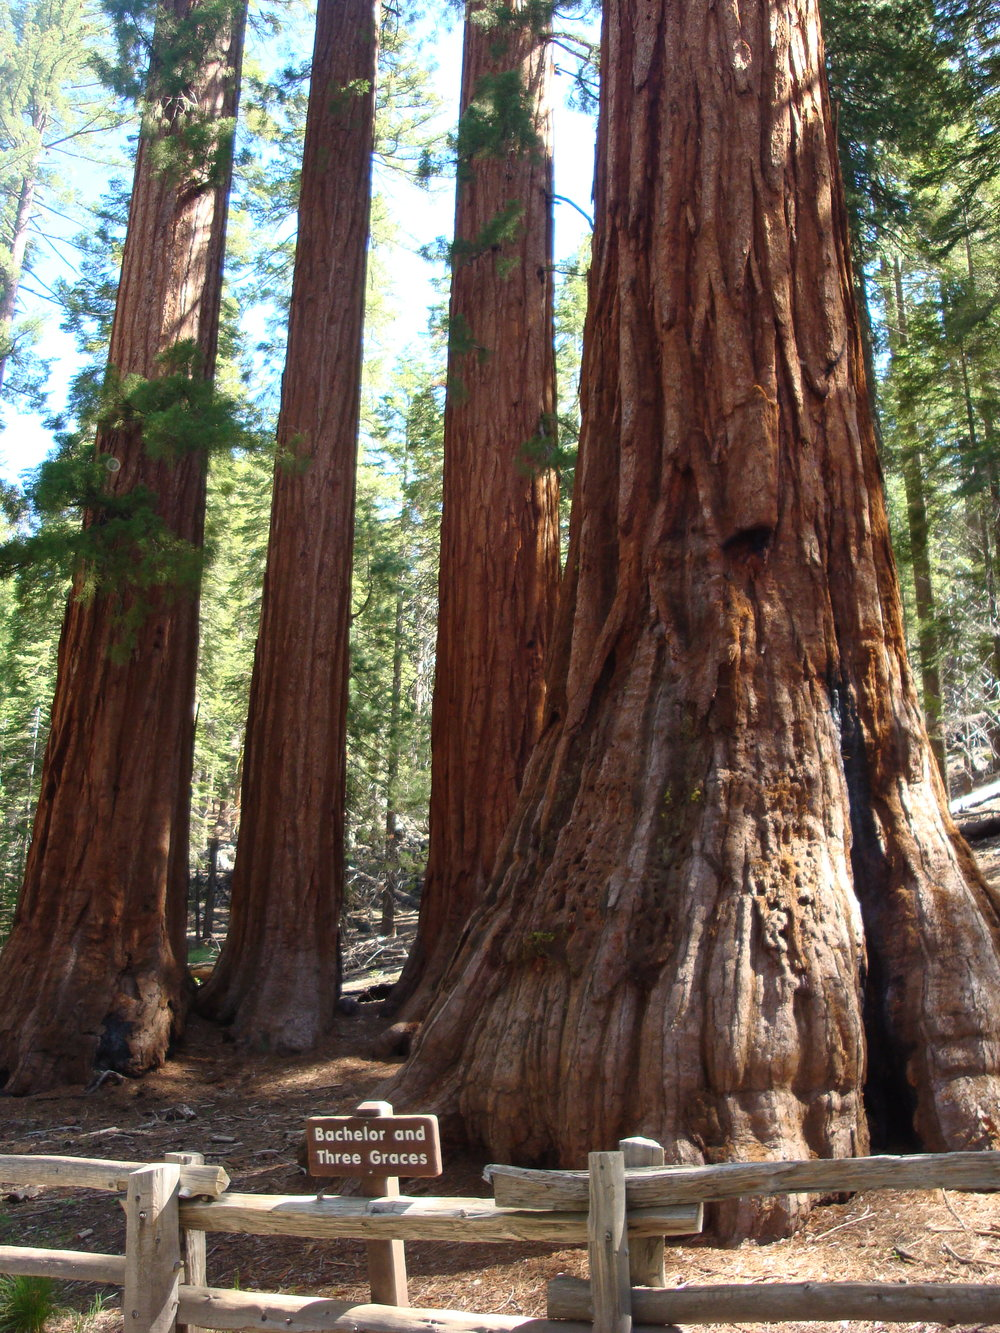 The Bachelor and The Three Graces - May 2008 - Mariposa Grove of Giant Sequoias. The Grove has been closed since 2015 and will open again June 15, 2018.